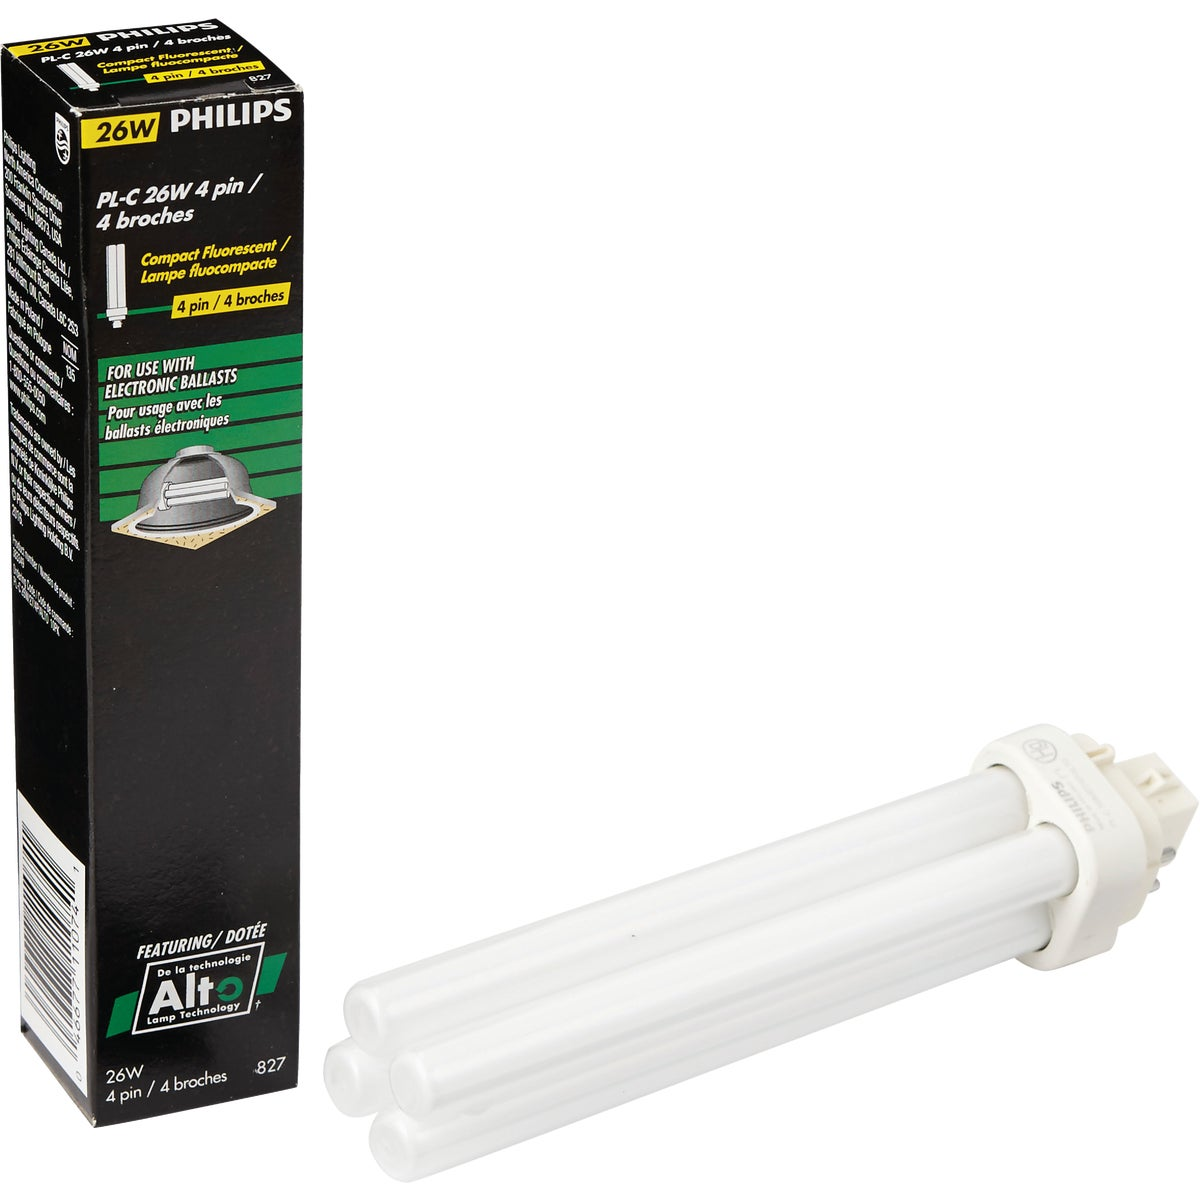 26W TWIN TUBE - 97610 by G E Lighting